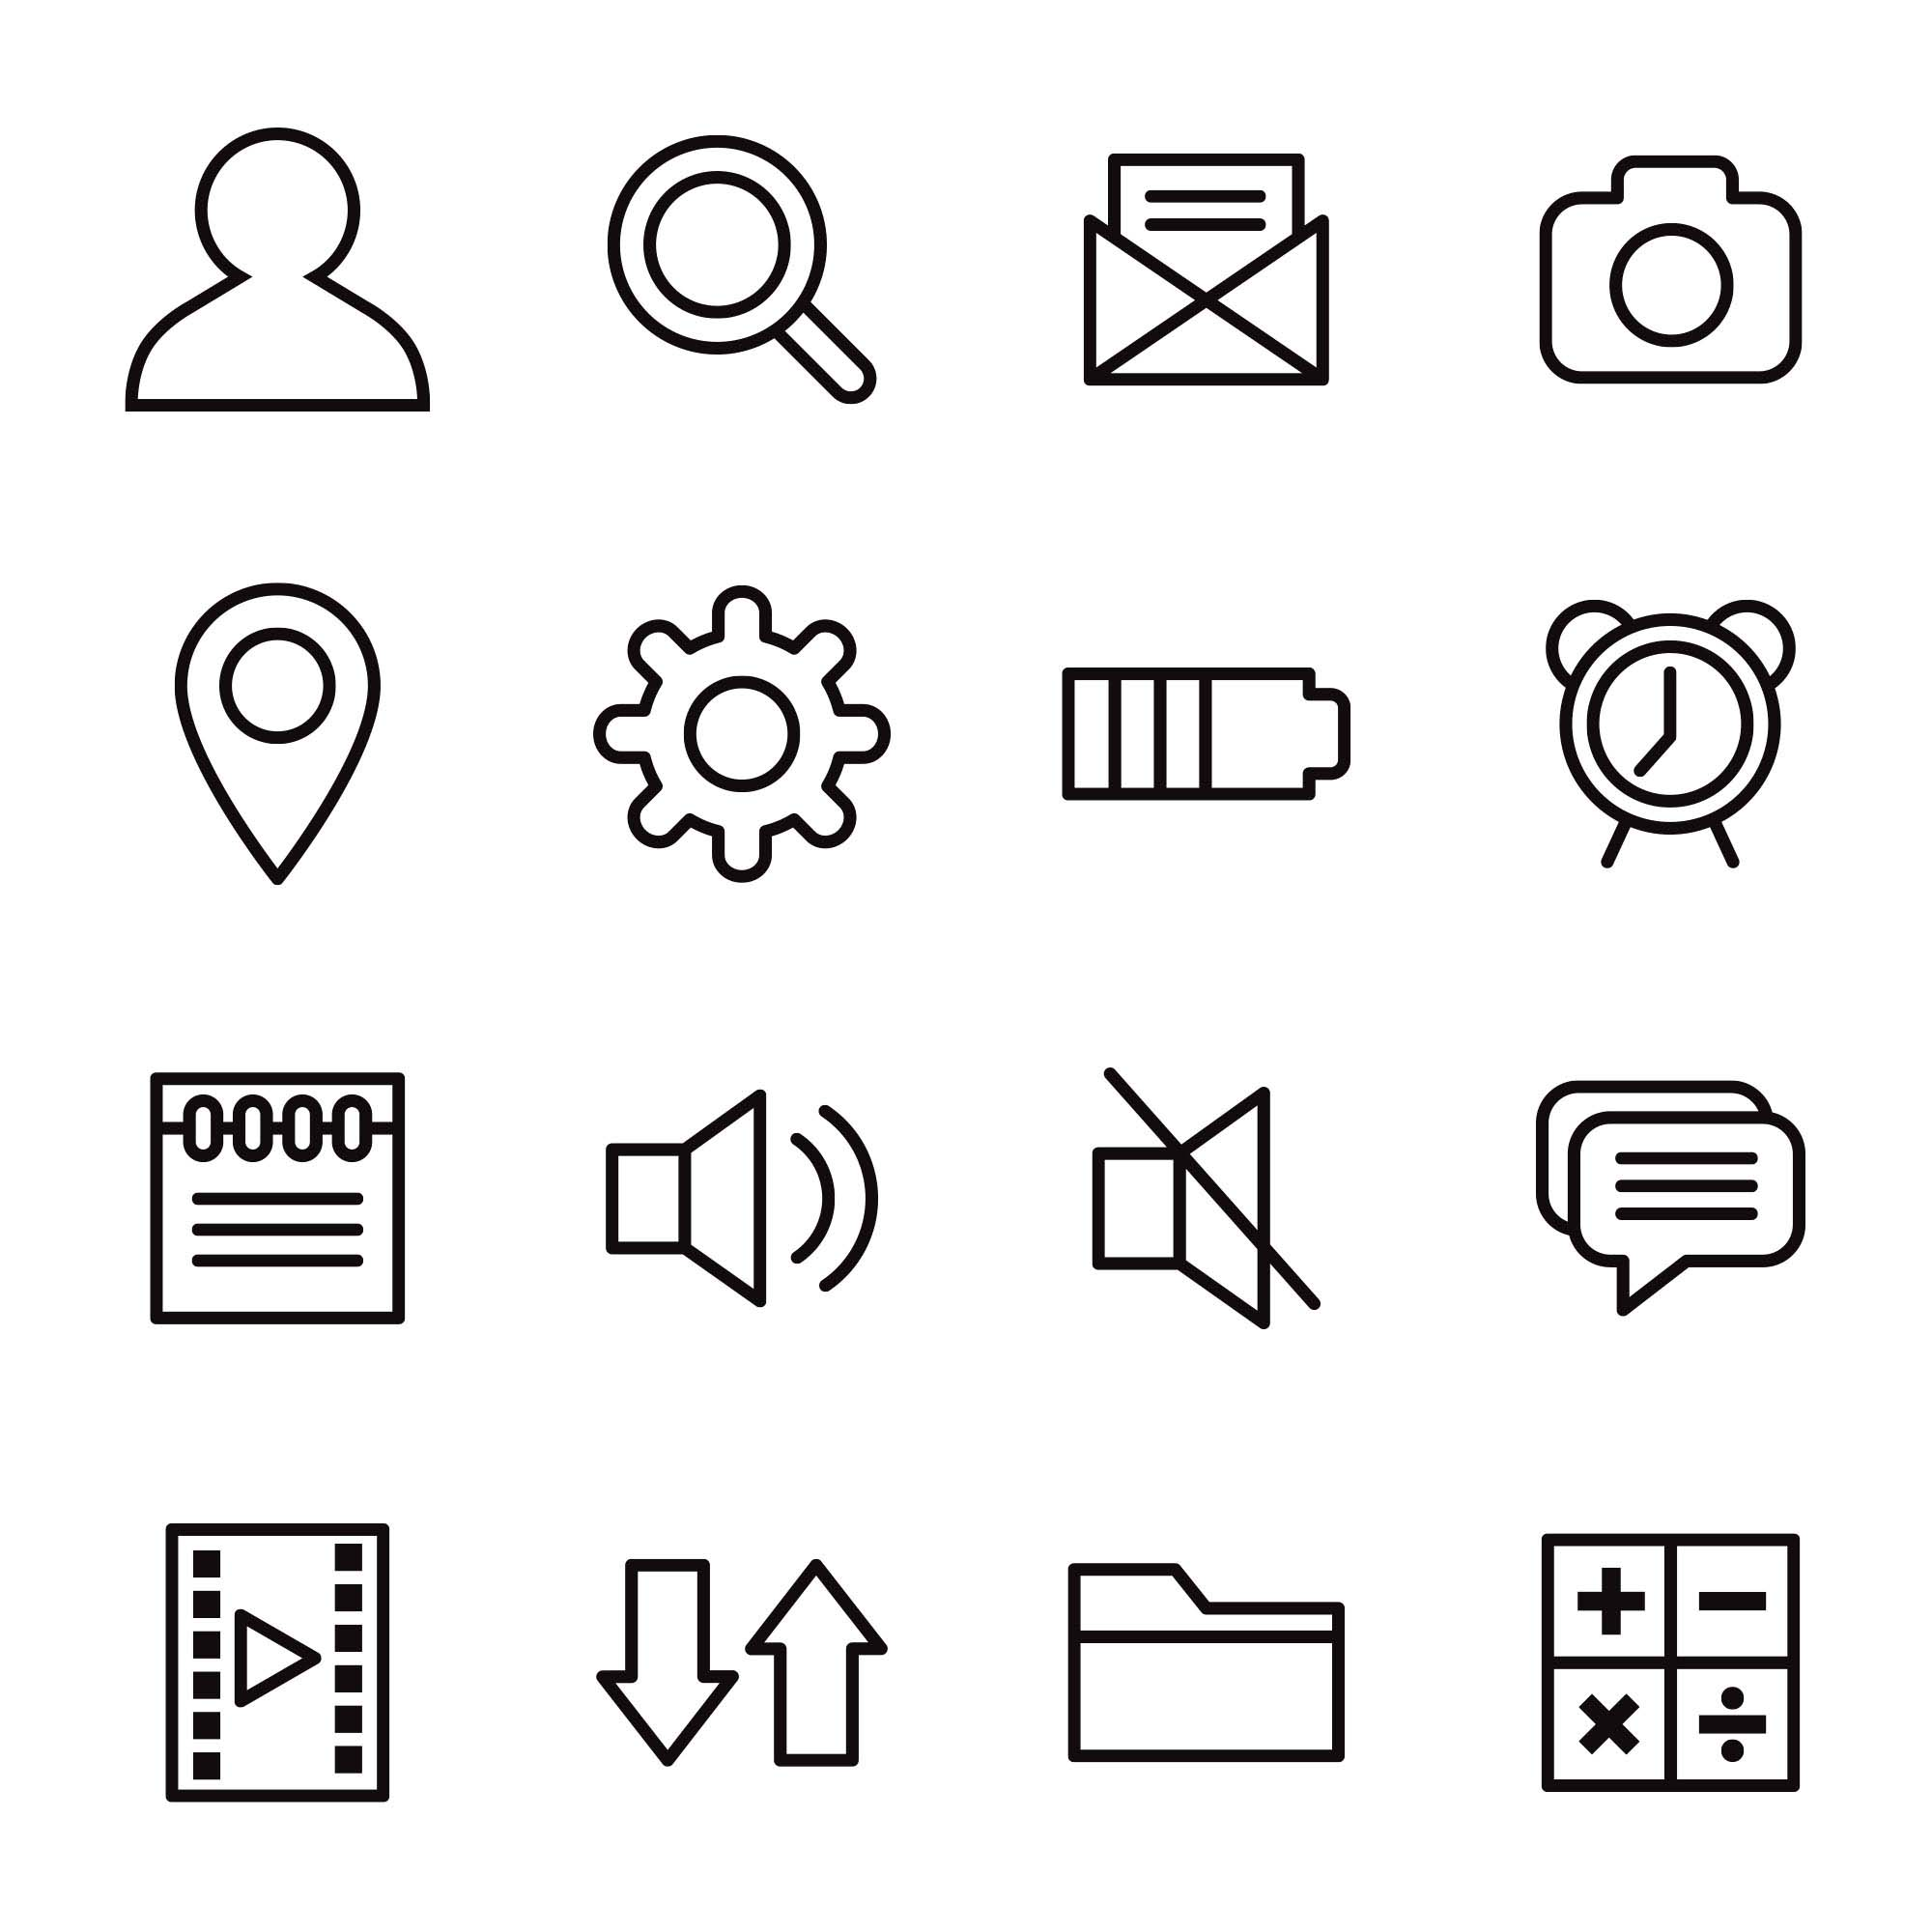 Mobile App Vector Icons 2